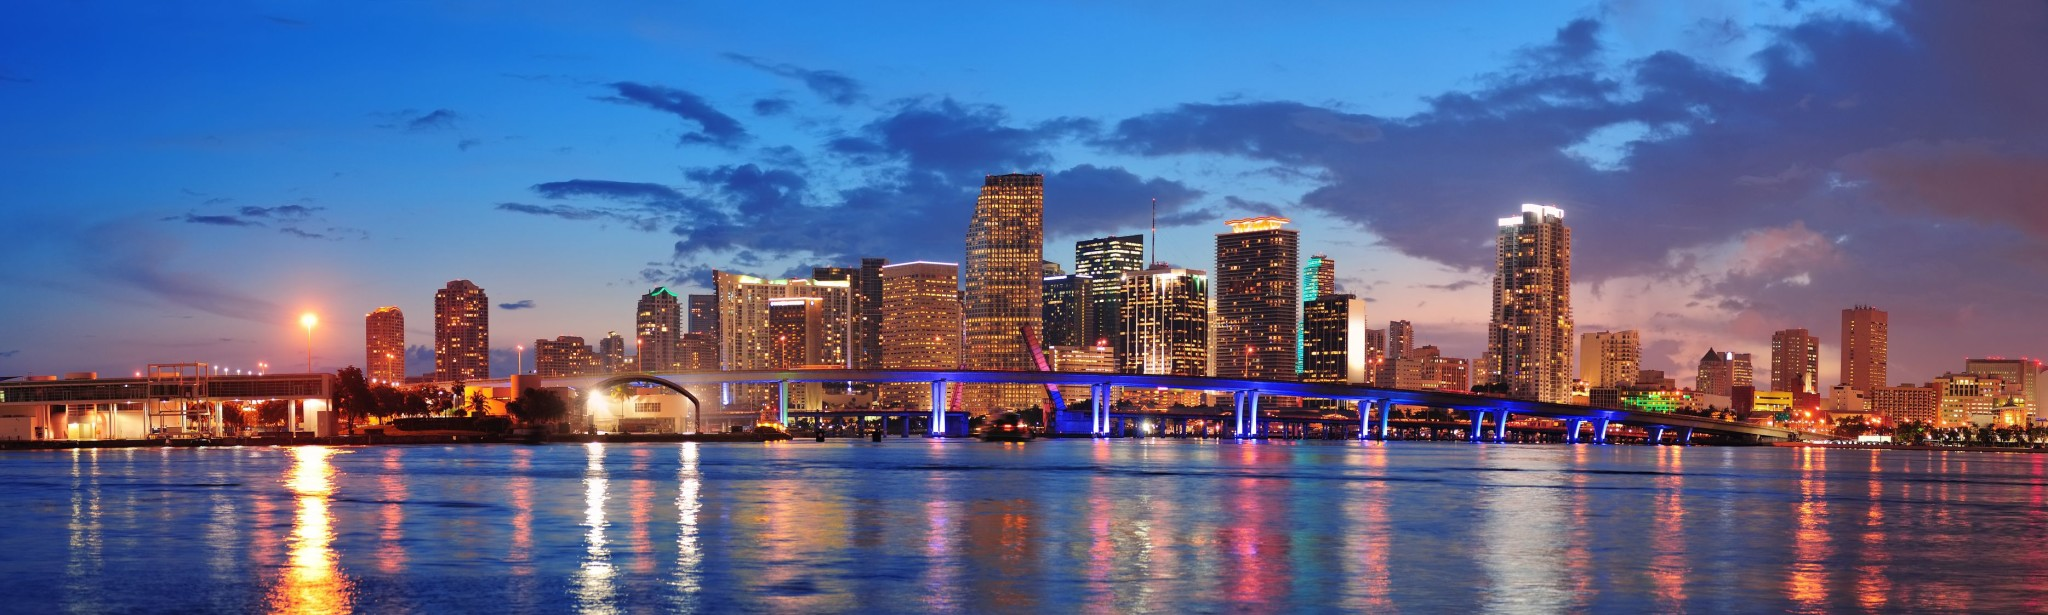 Miami Layover | Layover Guide Miami